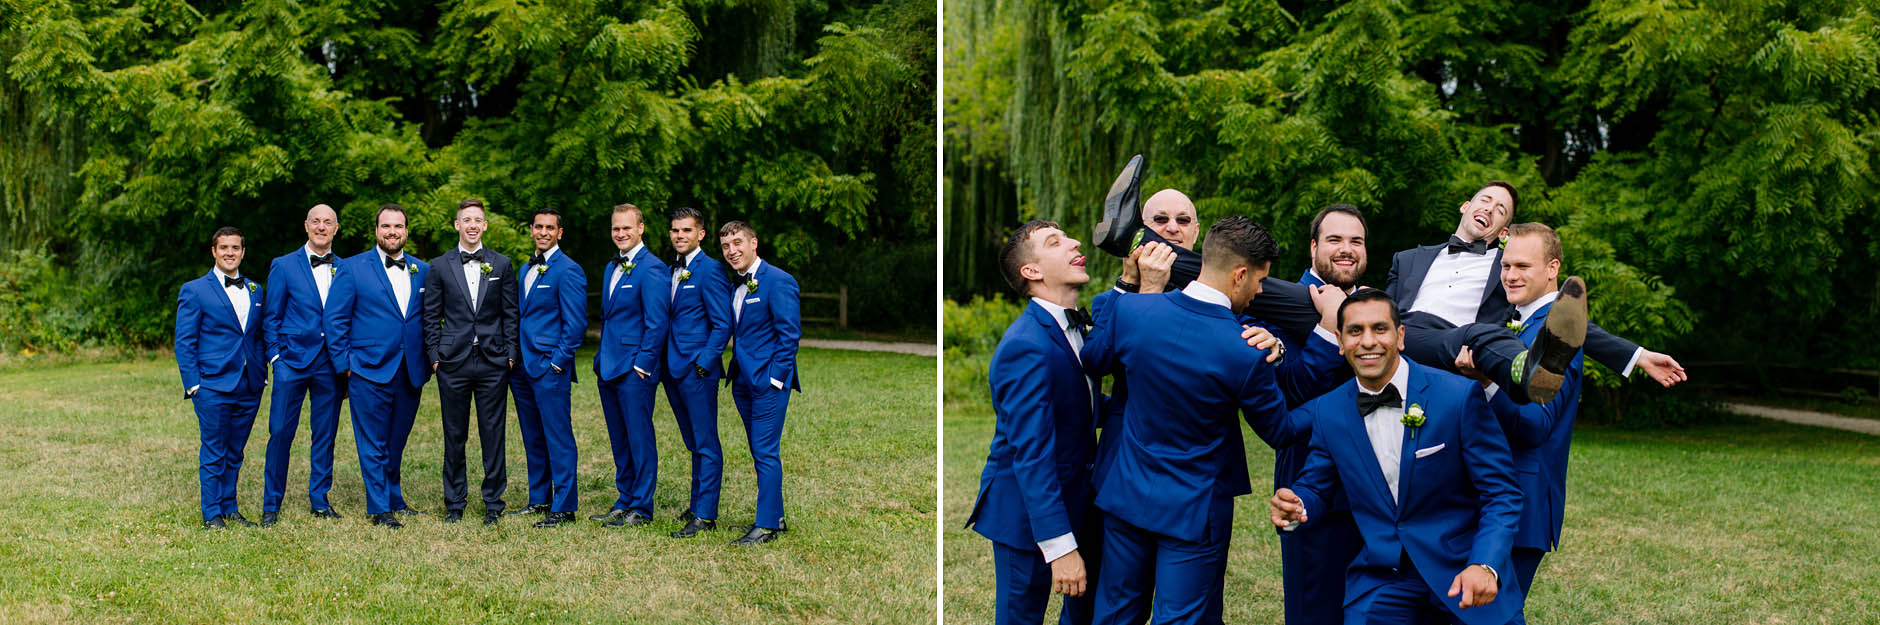 groomsmen-portraits-wedding